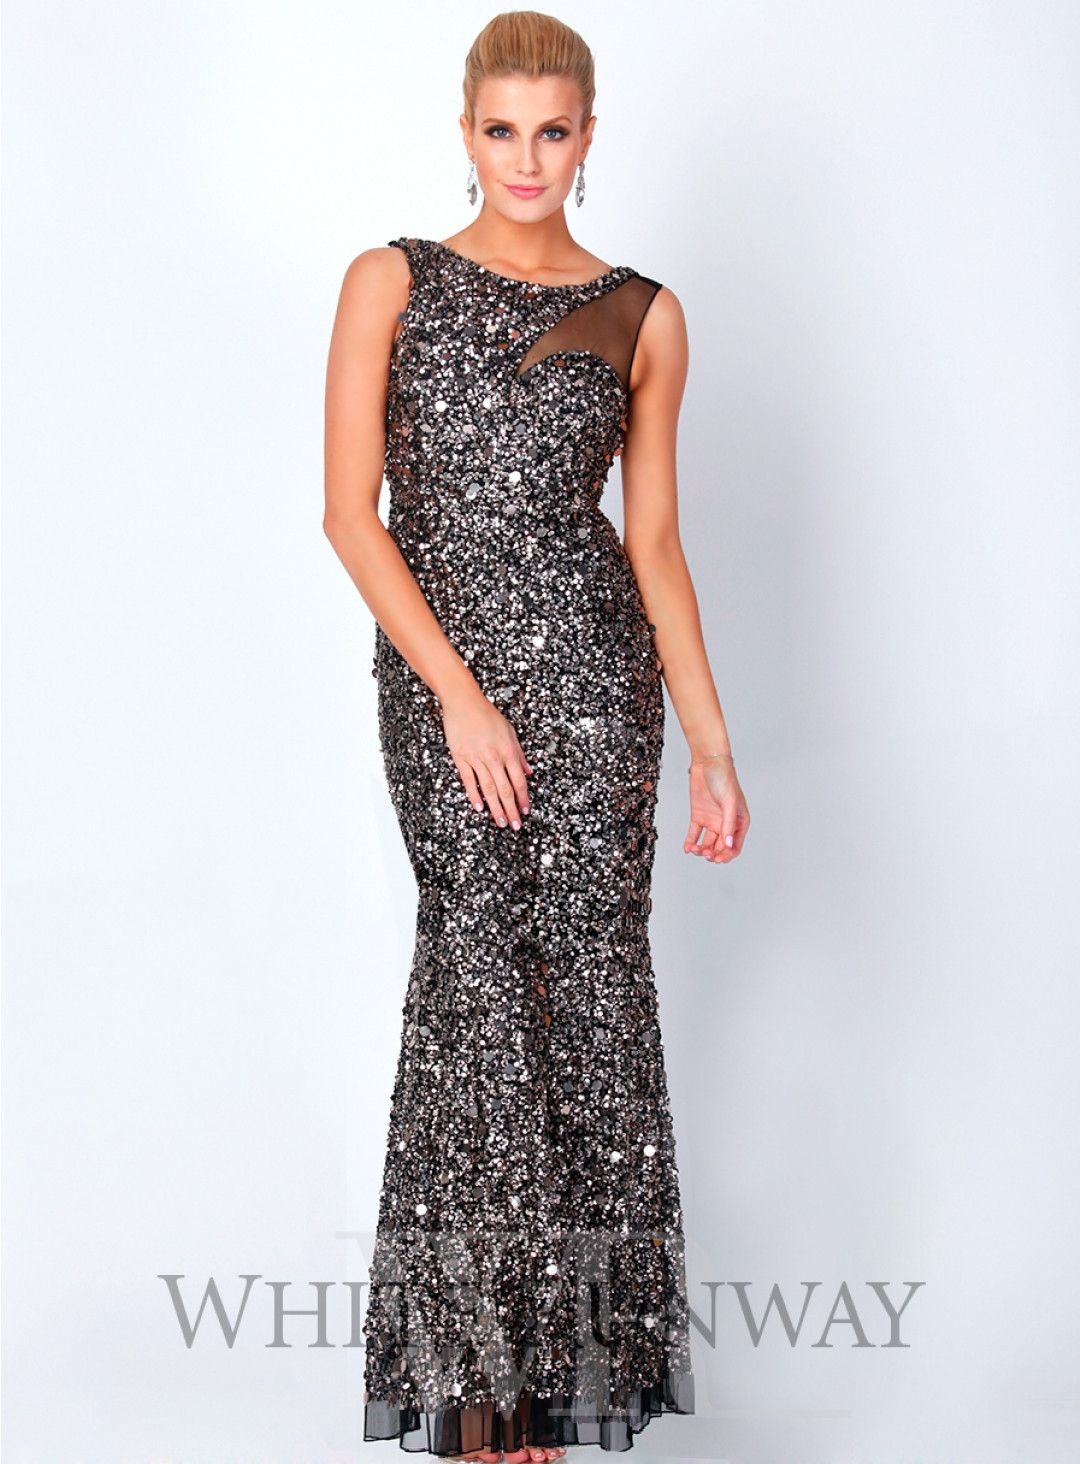 Bridie Sequin Dress. Stunning full length gown by Australian ...